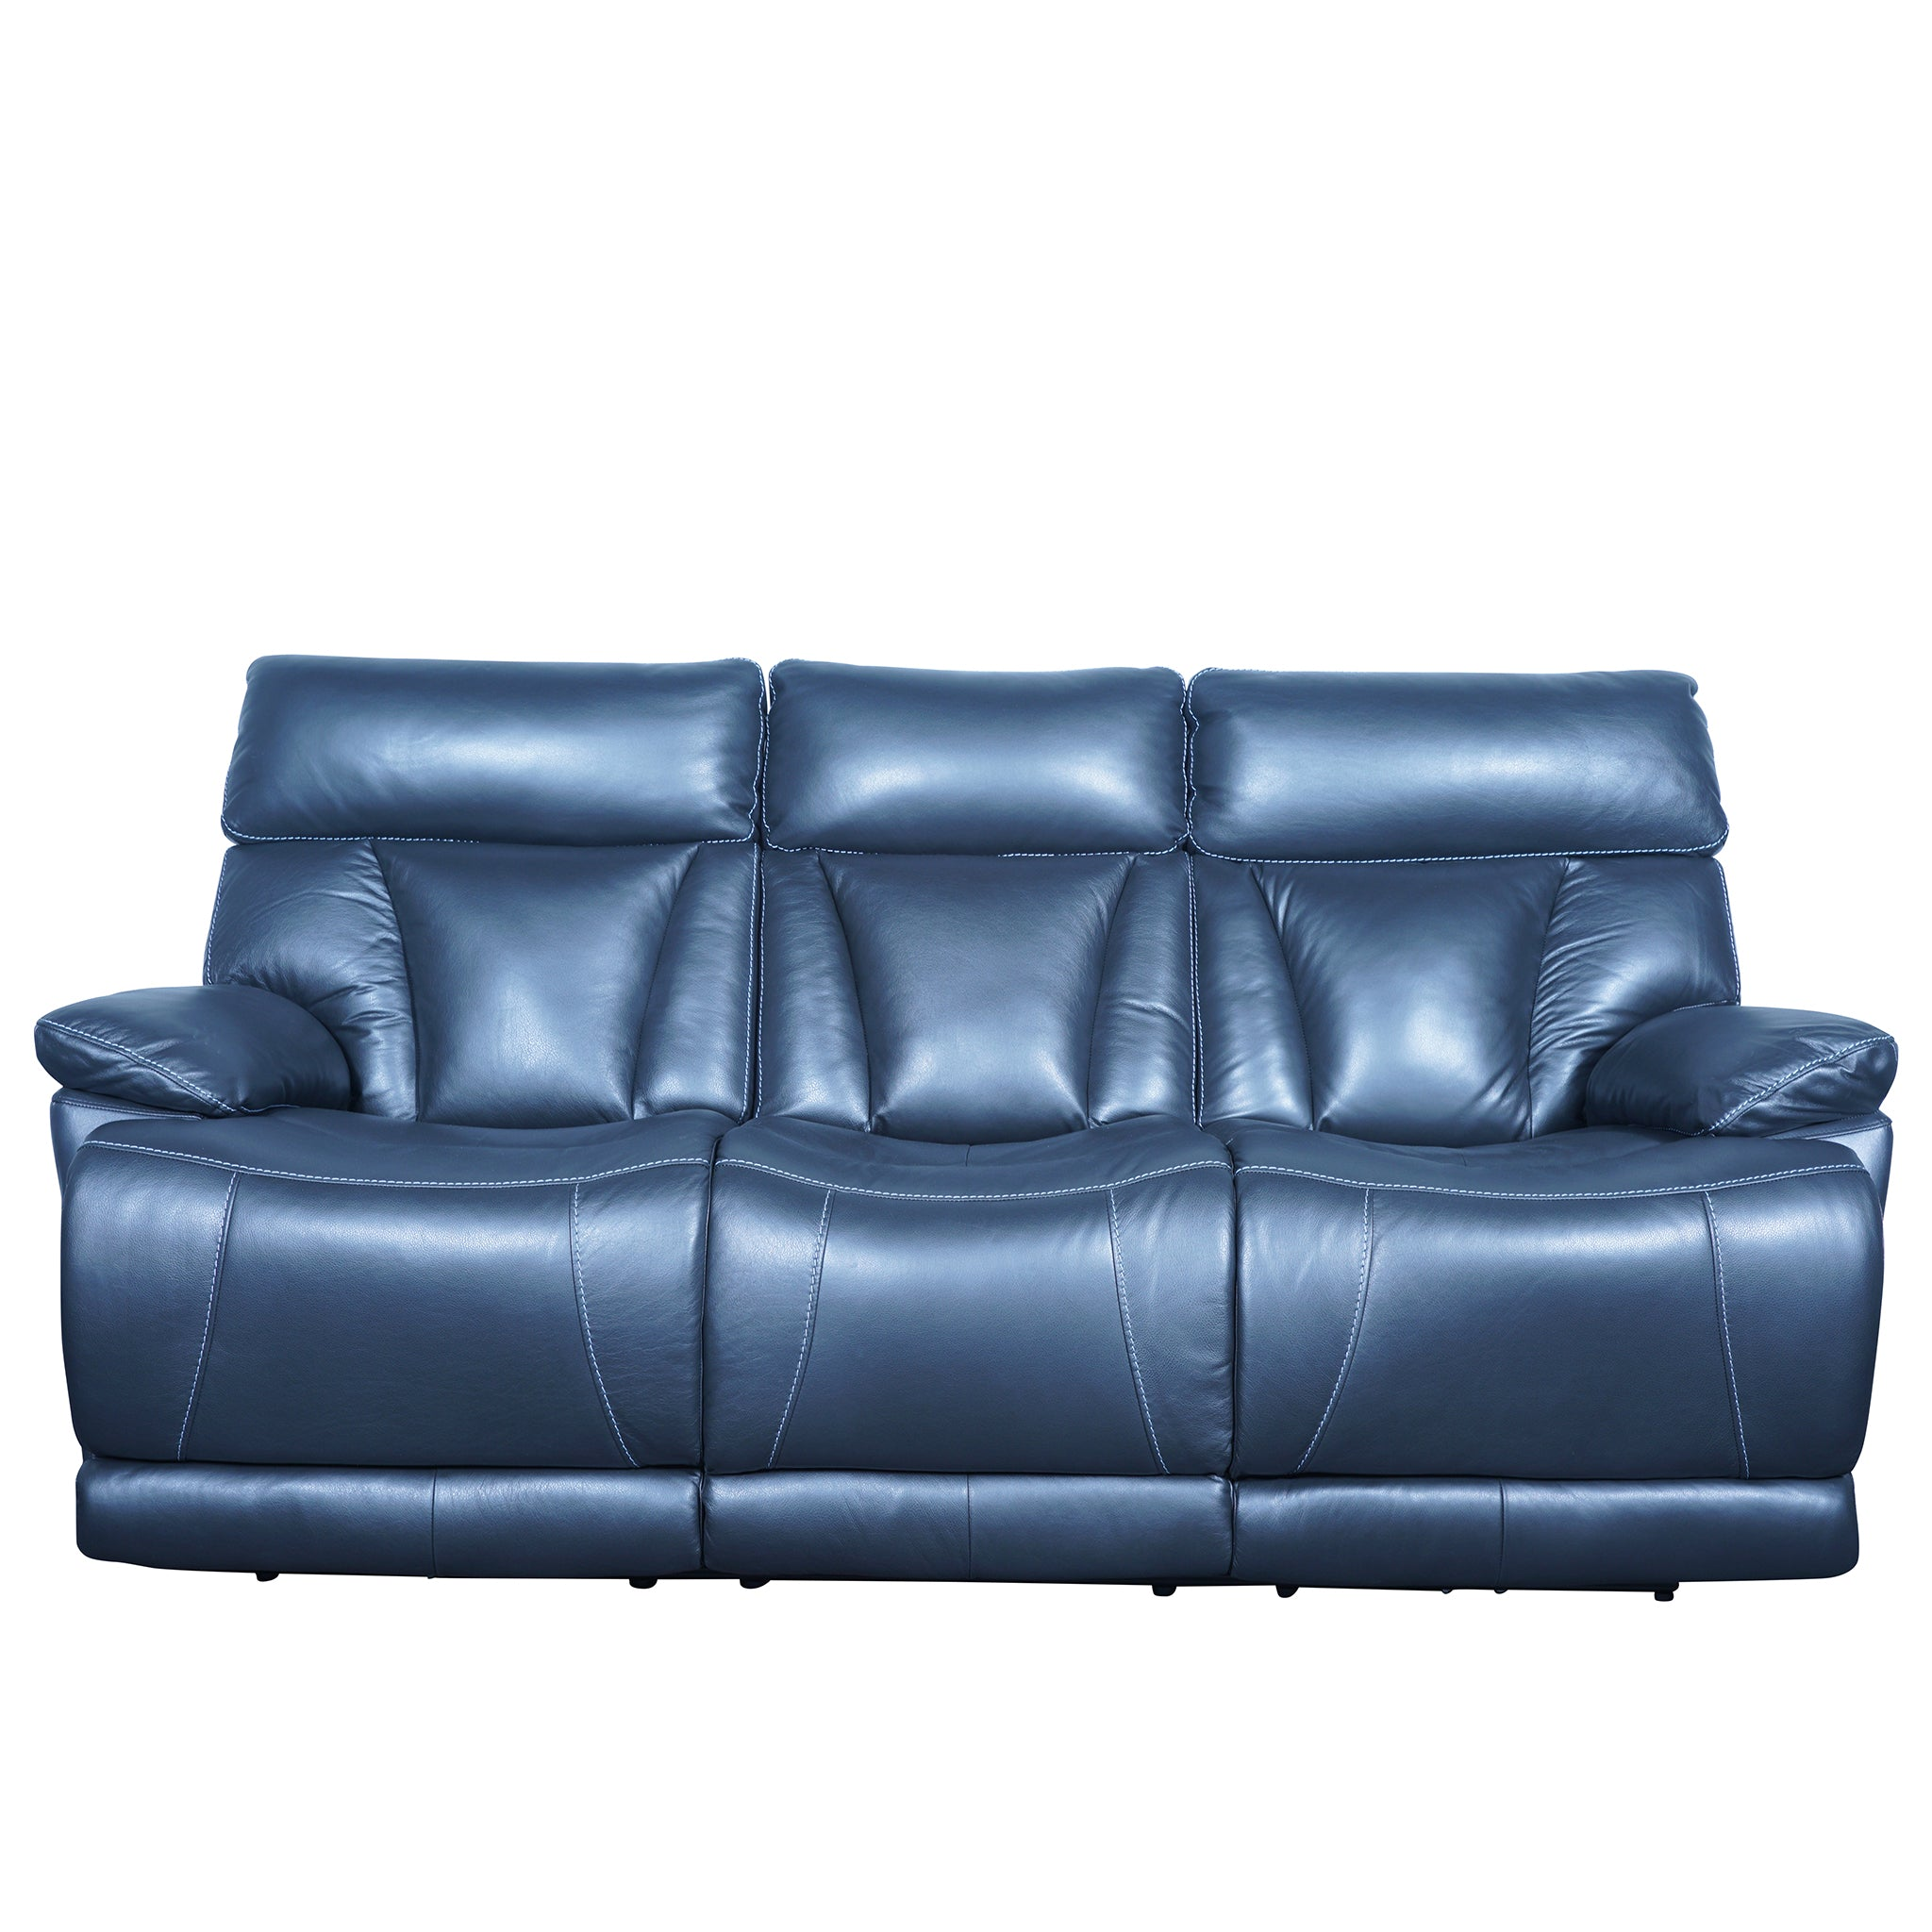 eastwood 3 seater leather sofa with usa sinomax foam